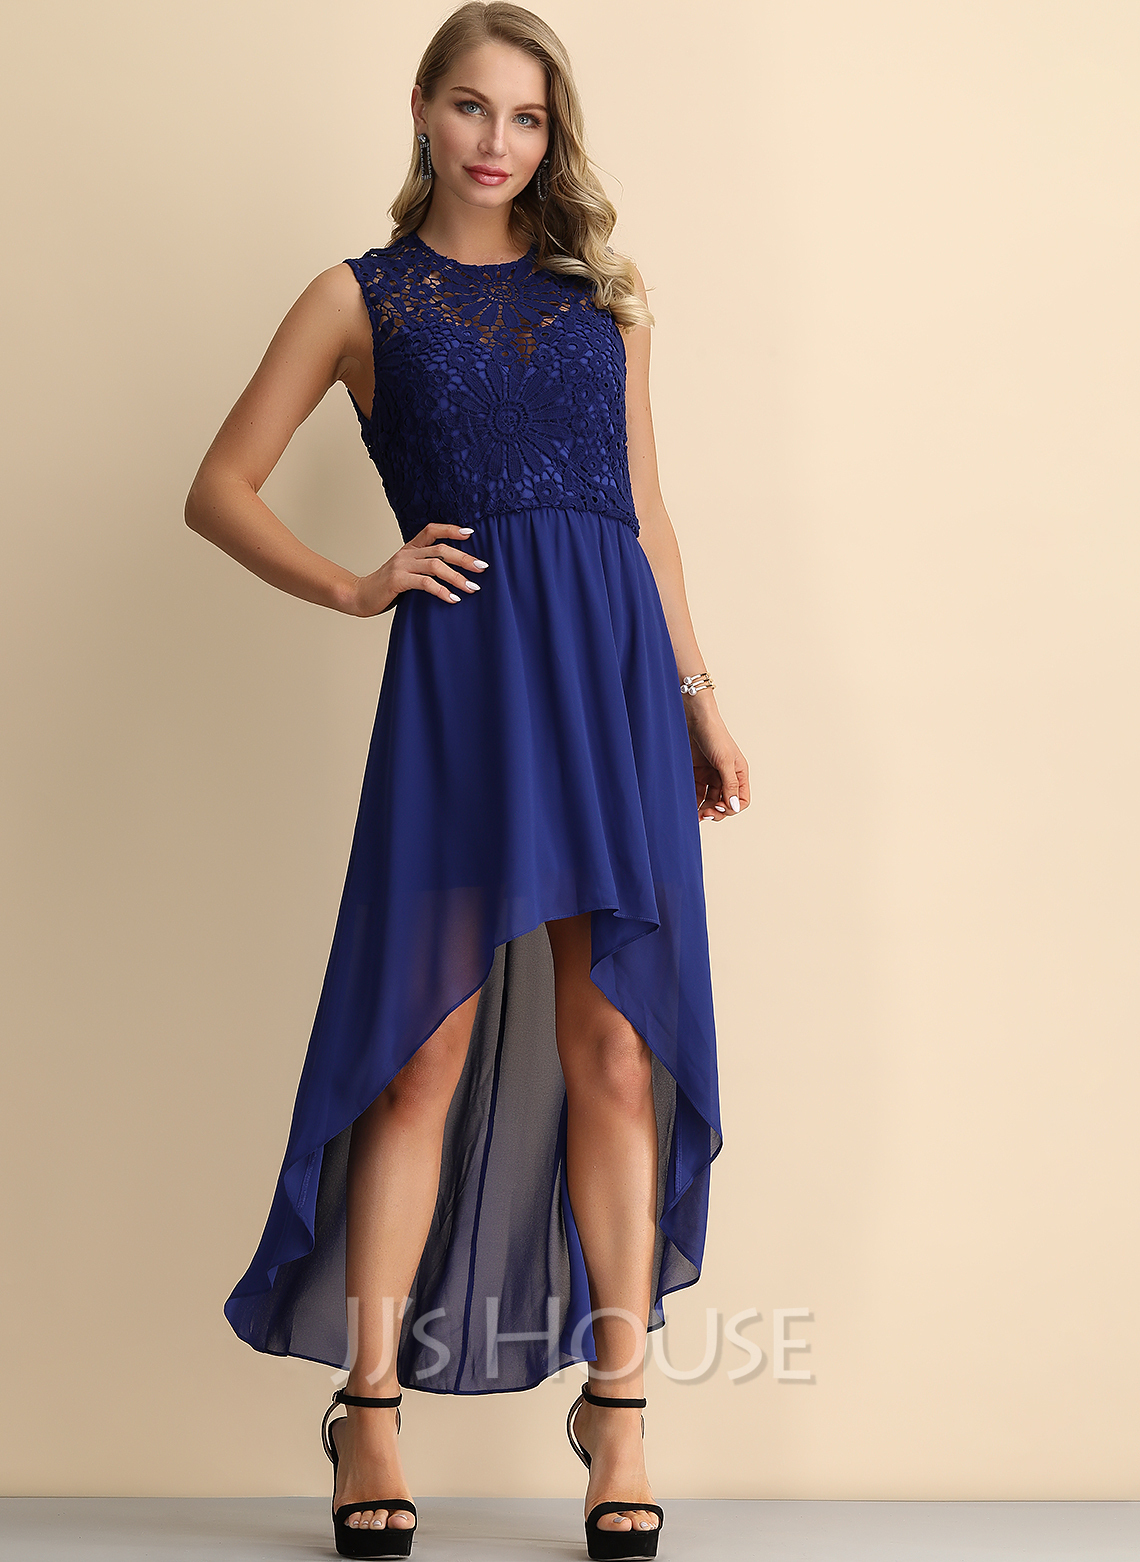 Lace/Chiffon Asymmetrical Dress